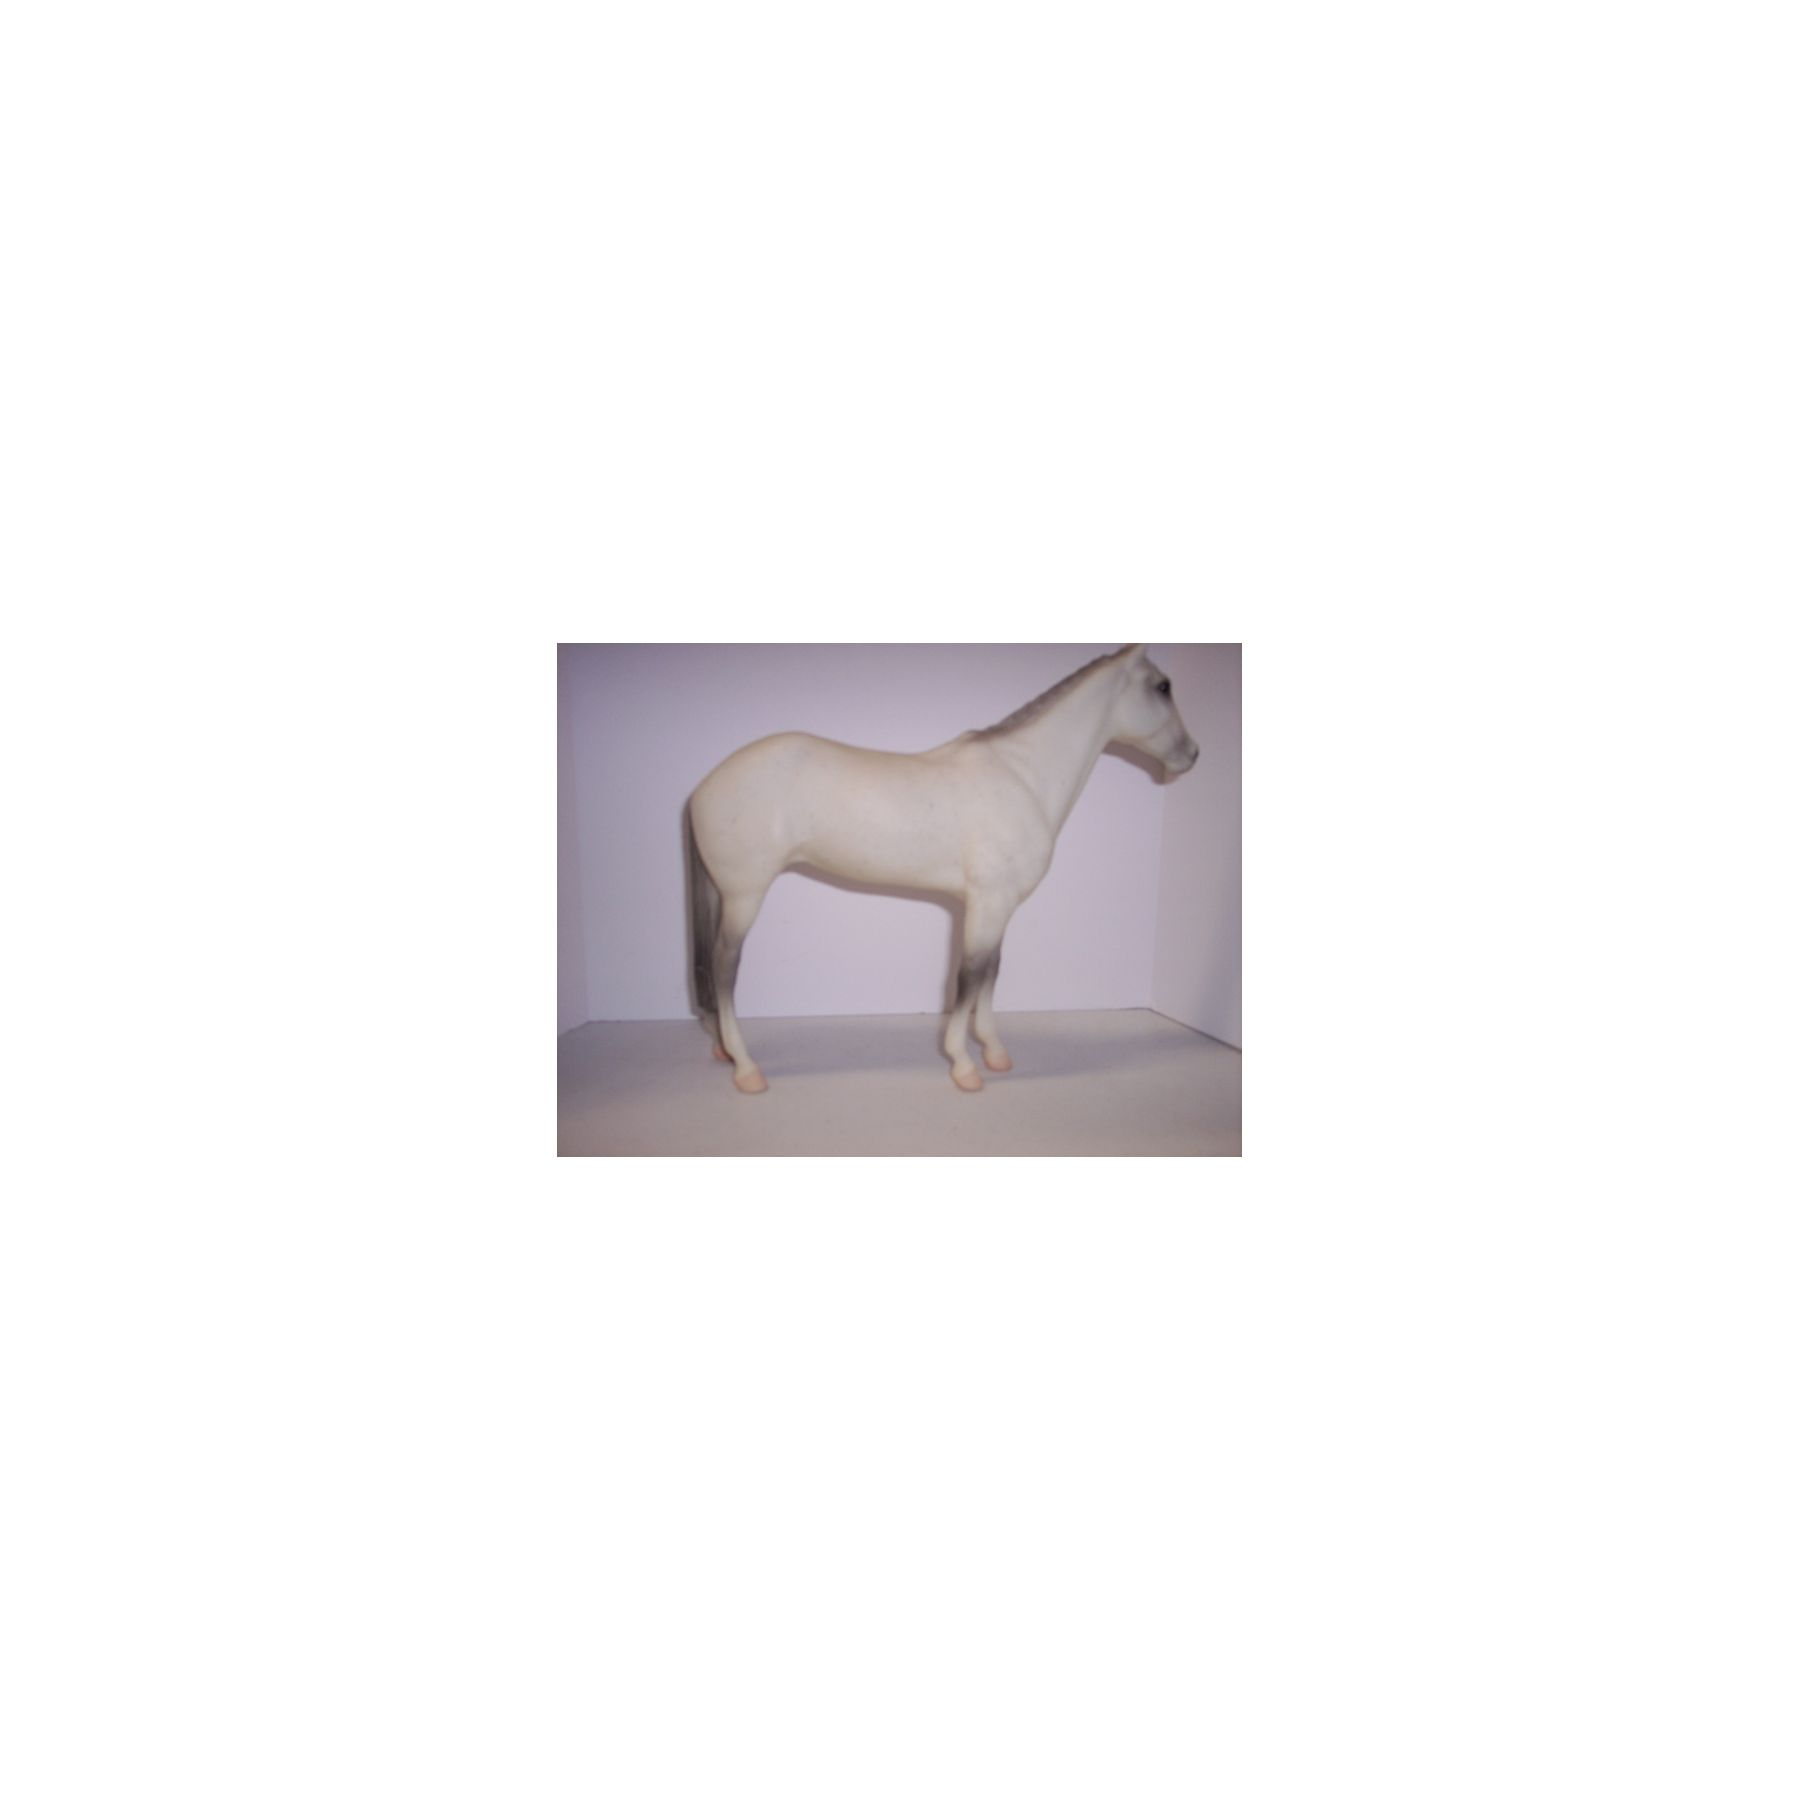 Breyer 1989 JC PEnny International Equestrian Collector #75693-K